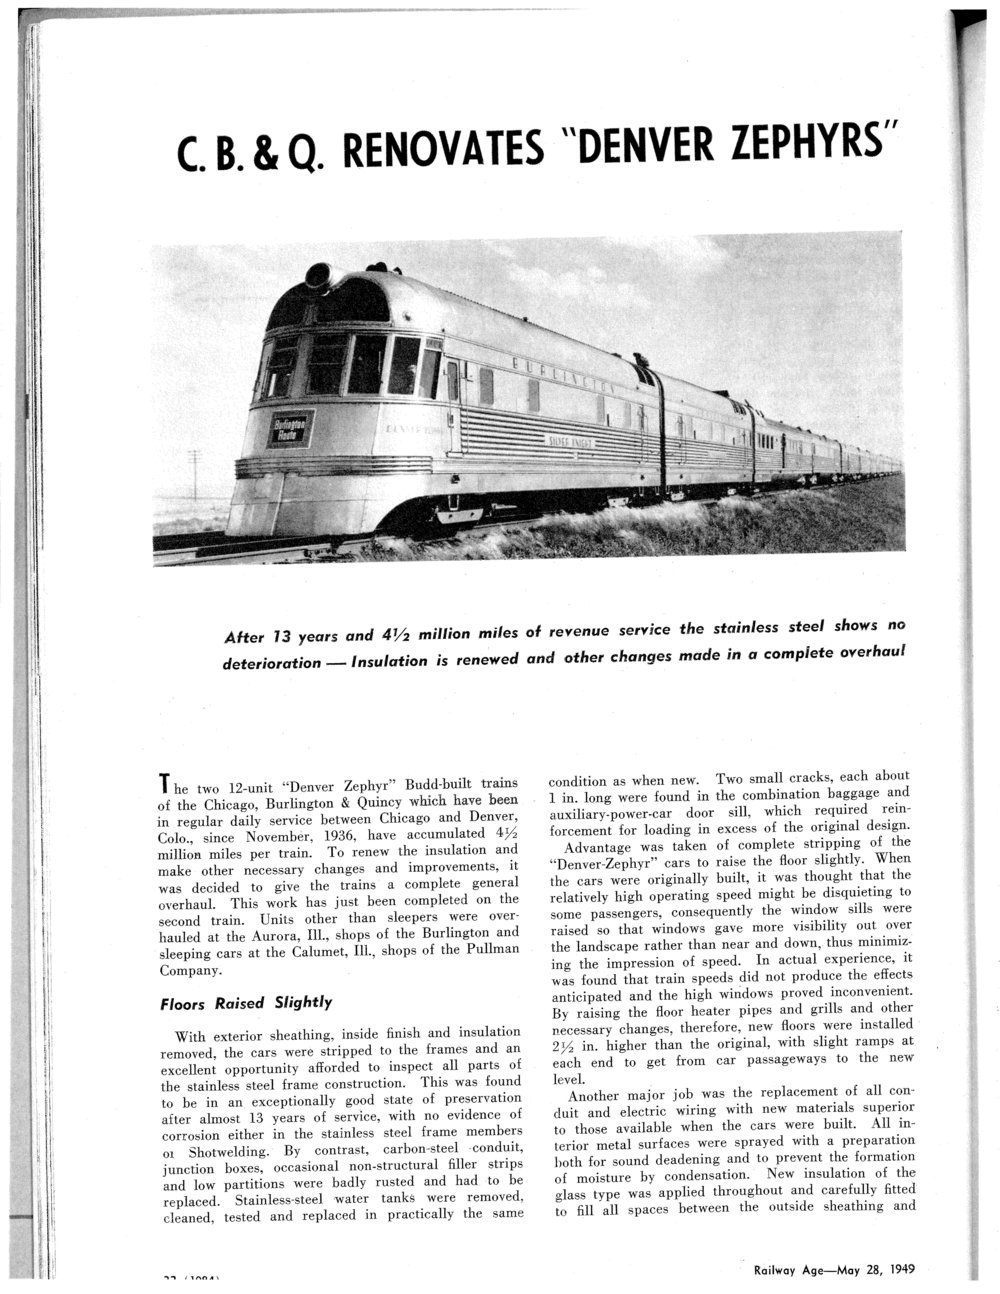 1949+Railway+Age+Article+on+car+updates 1.jpg